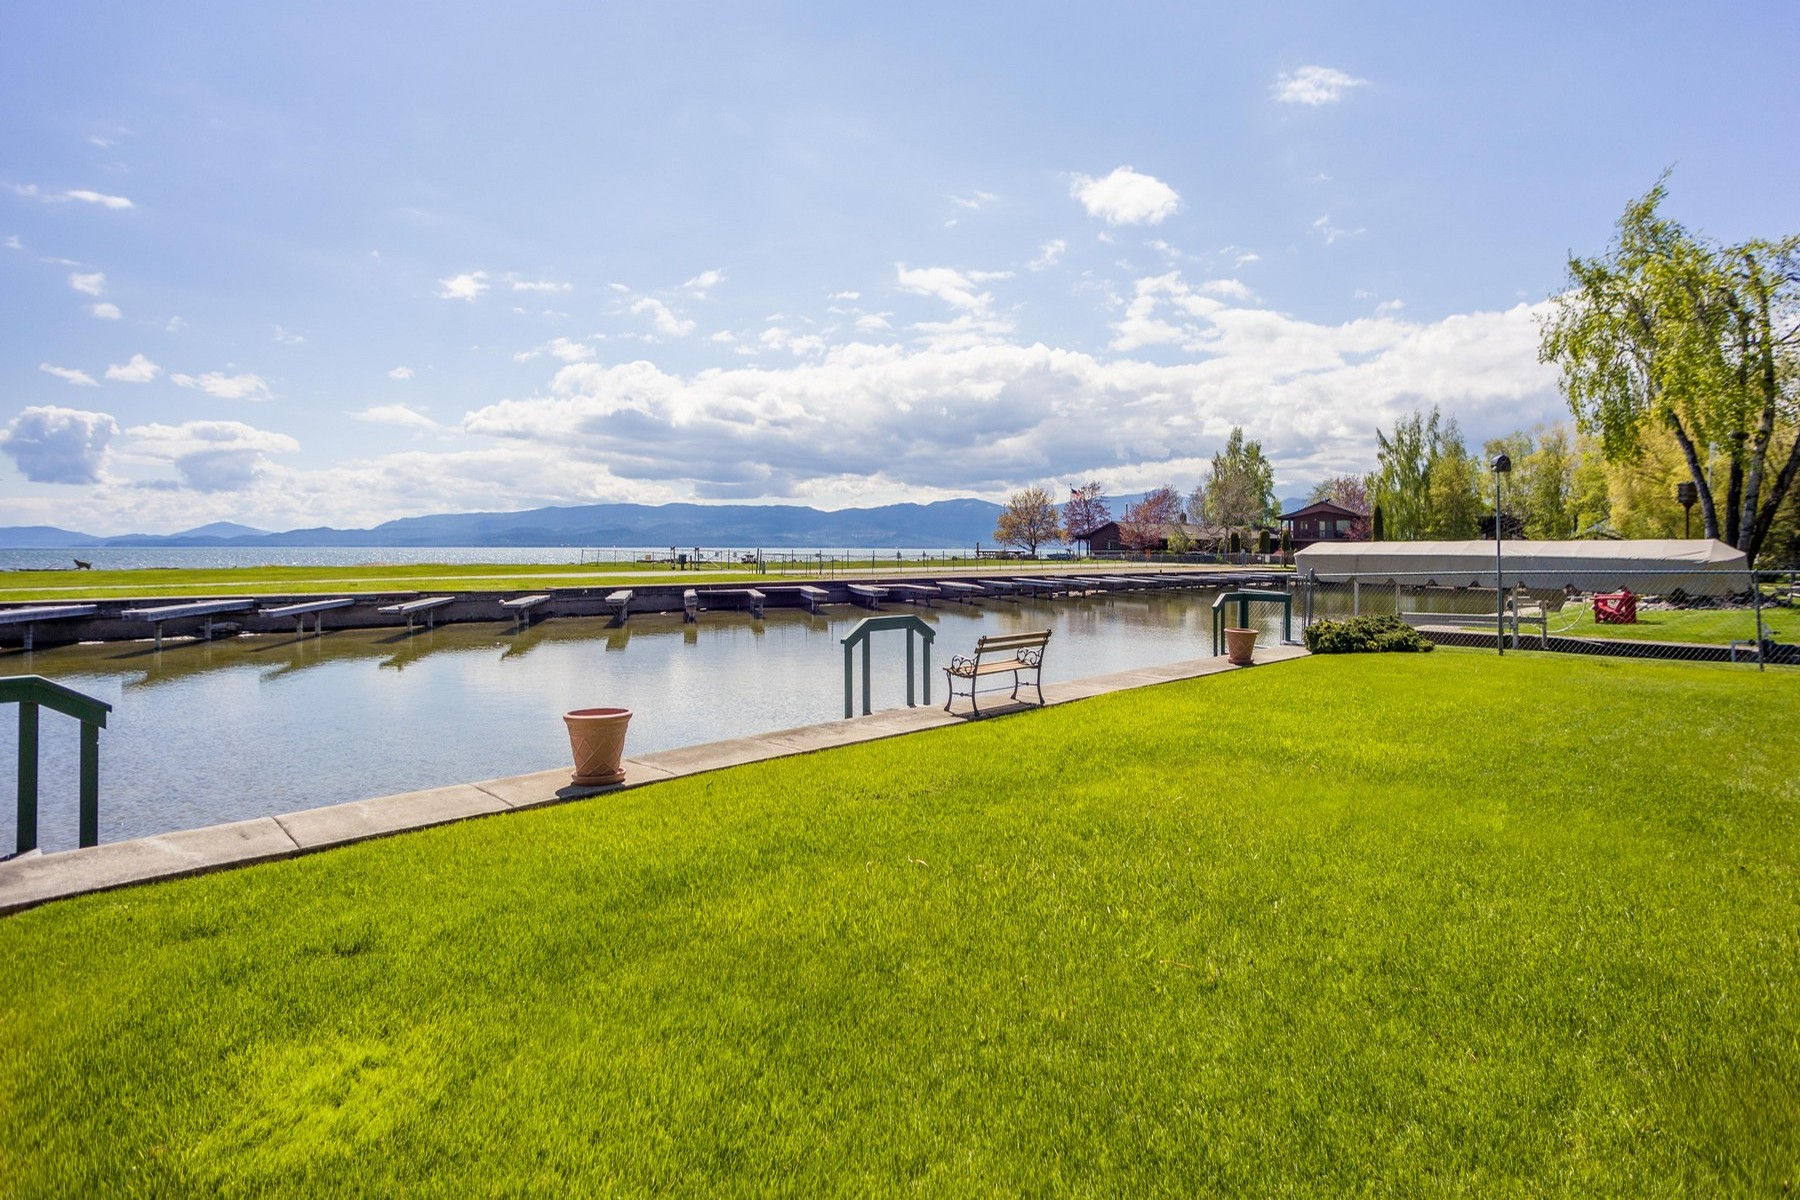 Additional photo for property listing at 160 Parkway Ave , Bigfork, MT 59911 160  Parkway Ave Bigfork, Montana 59911 United States